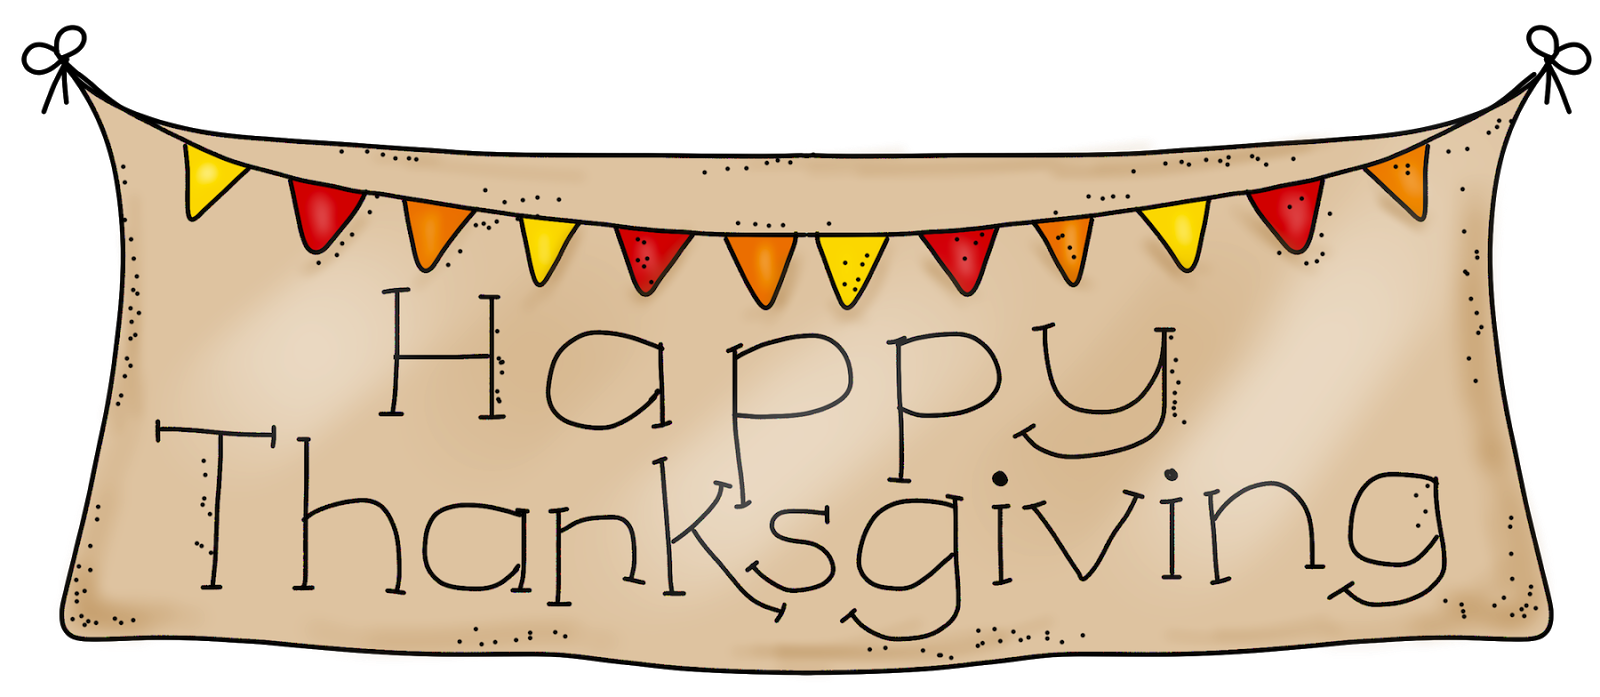 Happy thanksgiving clipart christian images graphic library stock Thanksgiving clipart printables - ClipartFest graphic library stock